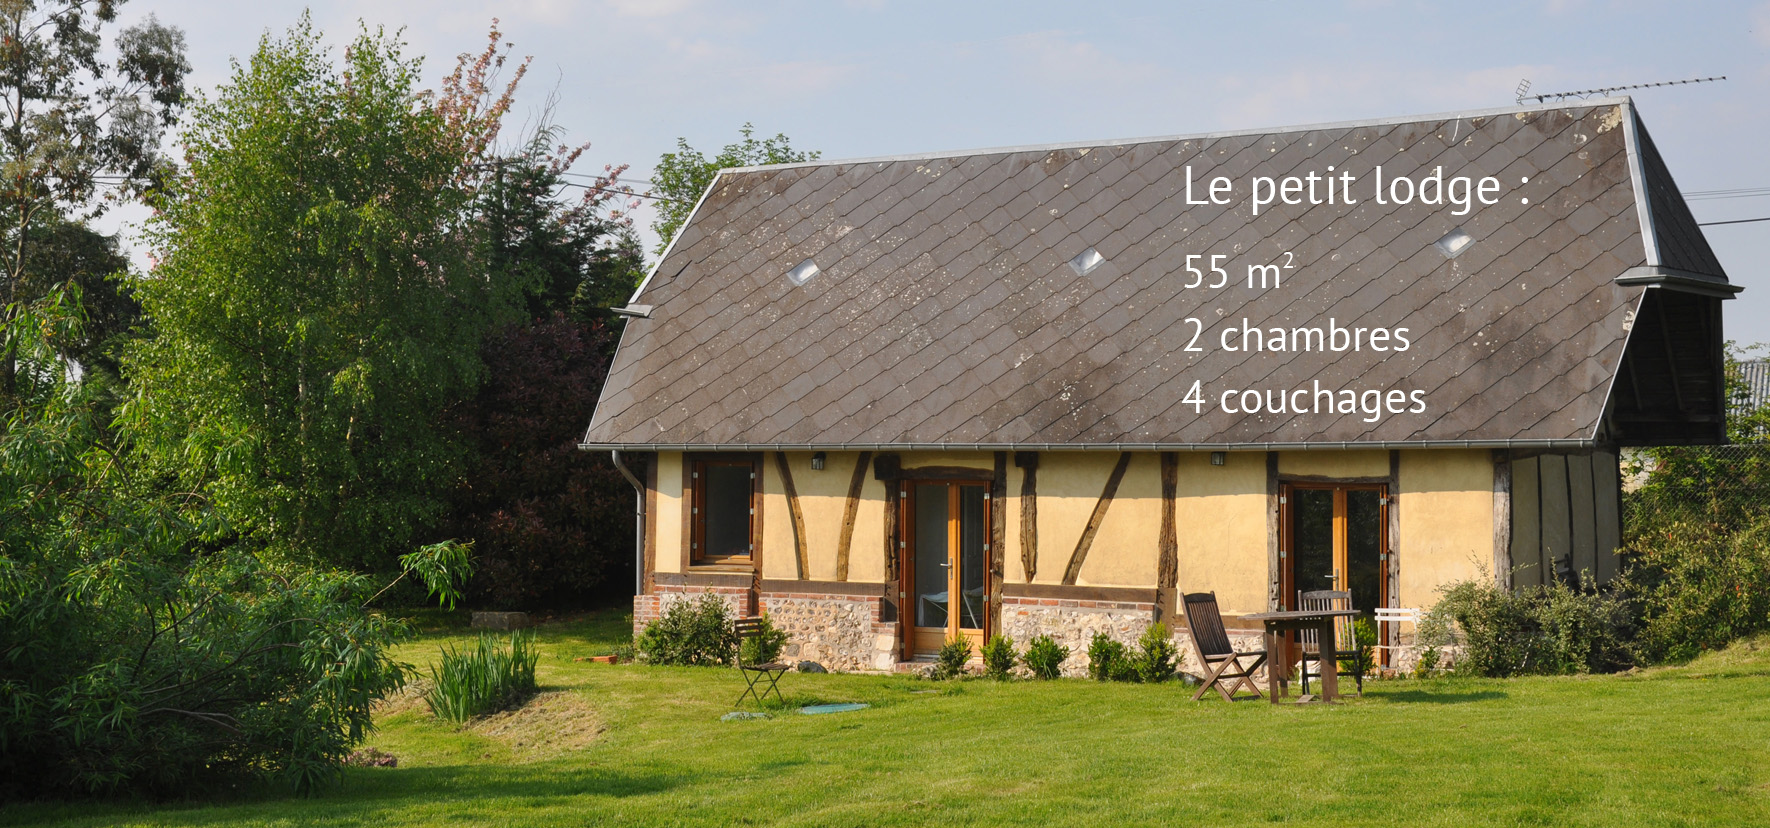 petit lodge